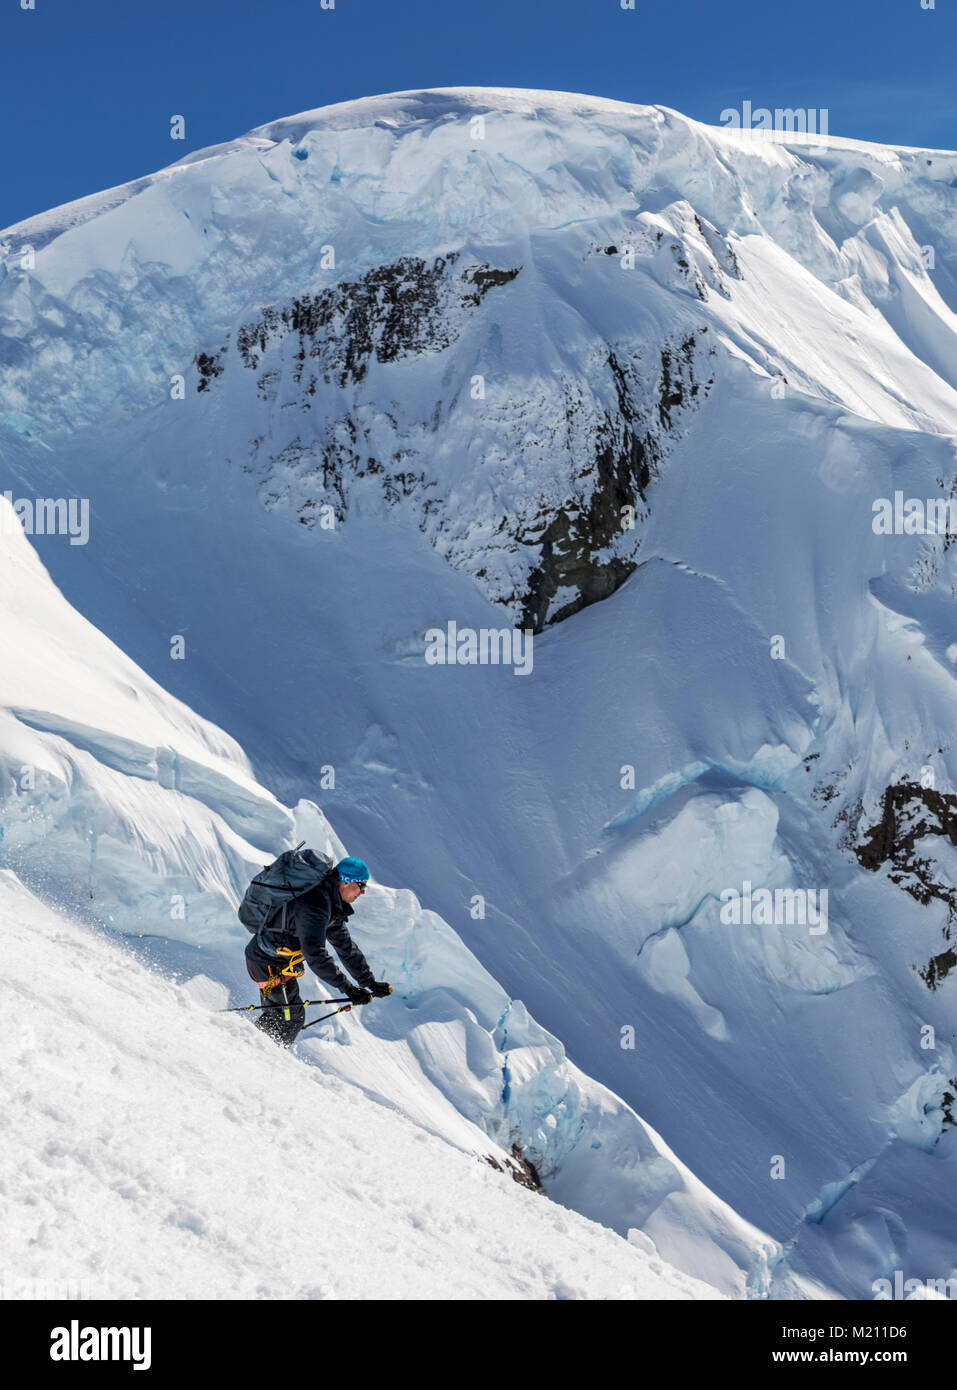 Alpine ski mountaineers skiing downhill in Antarctica Stock Photo